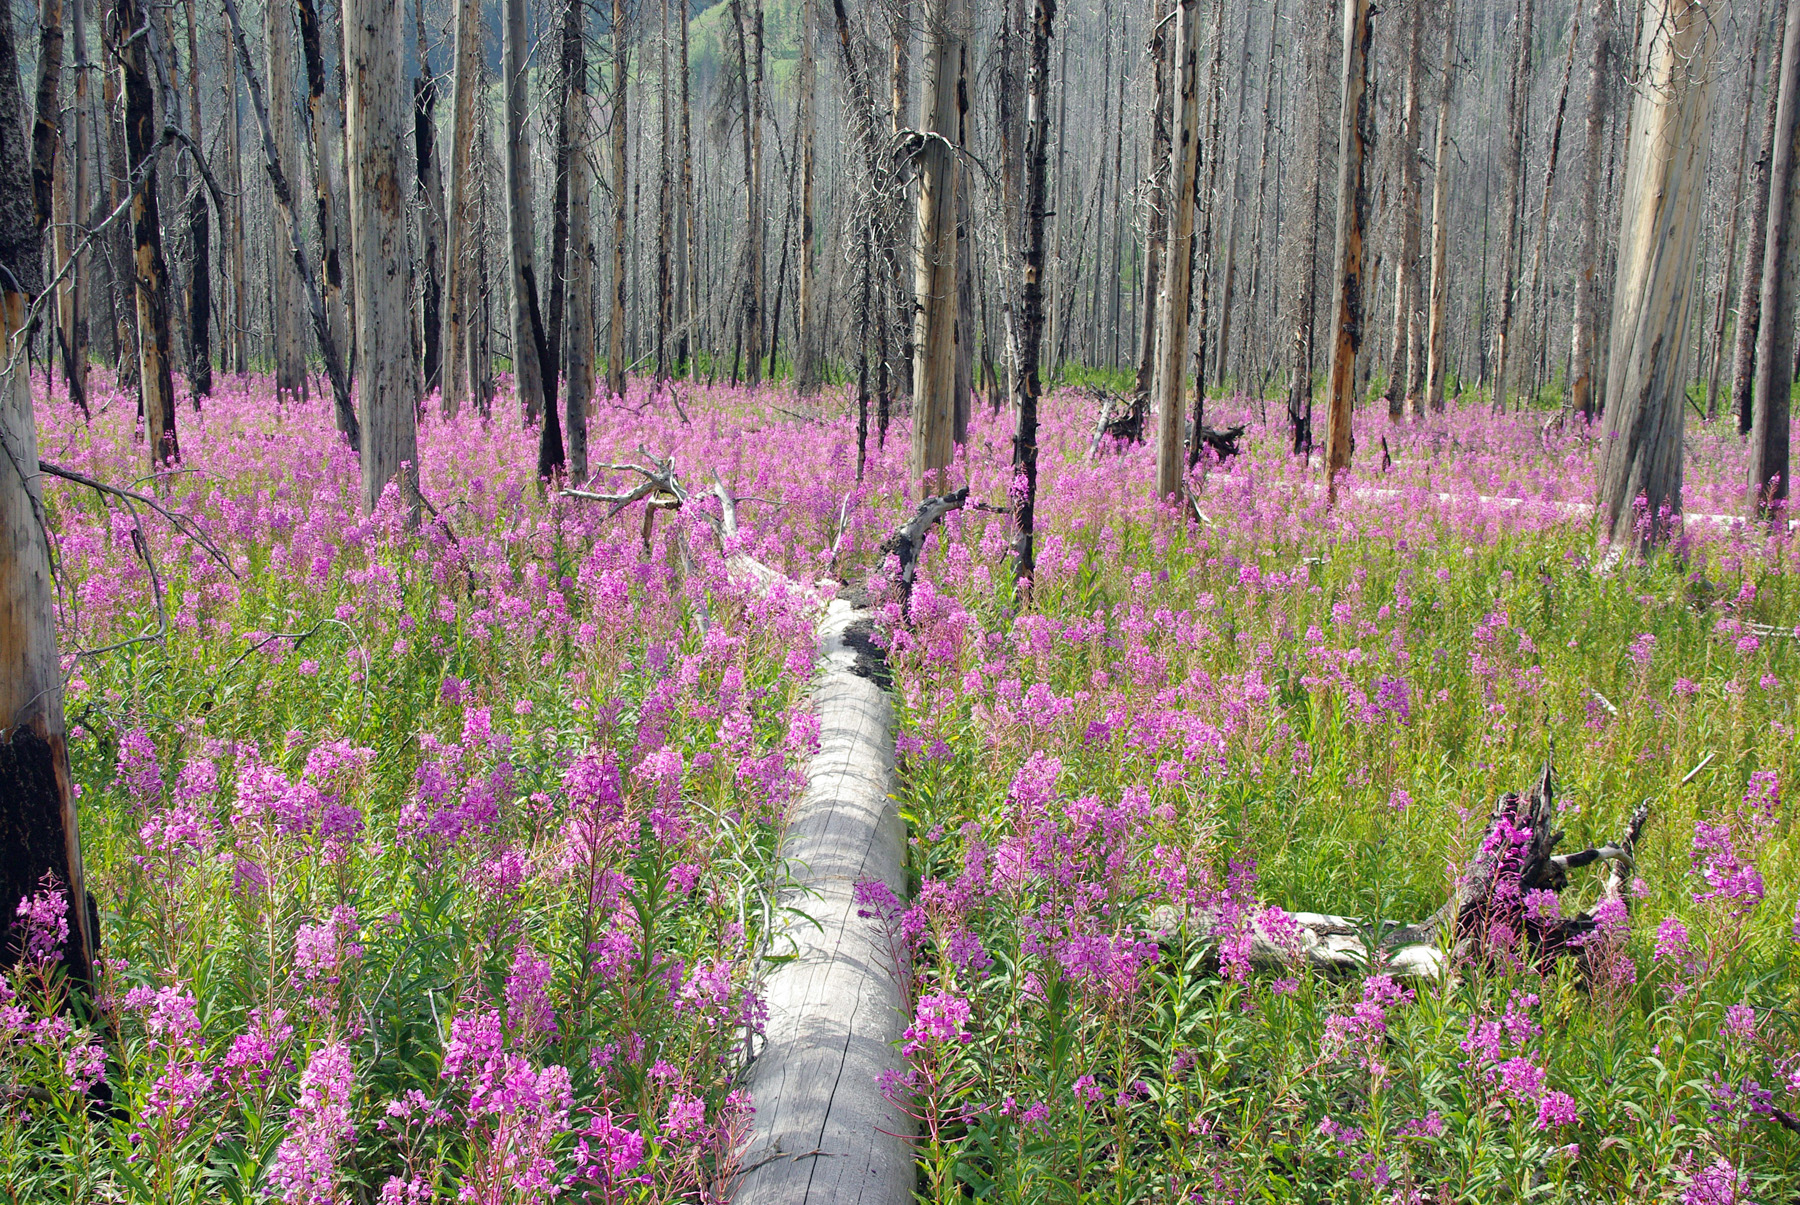 """Flowers after Fire in the Kootenay NP"" - by Jochen Steinhage"